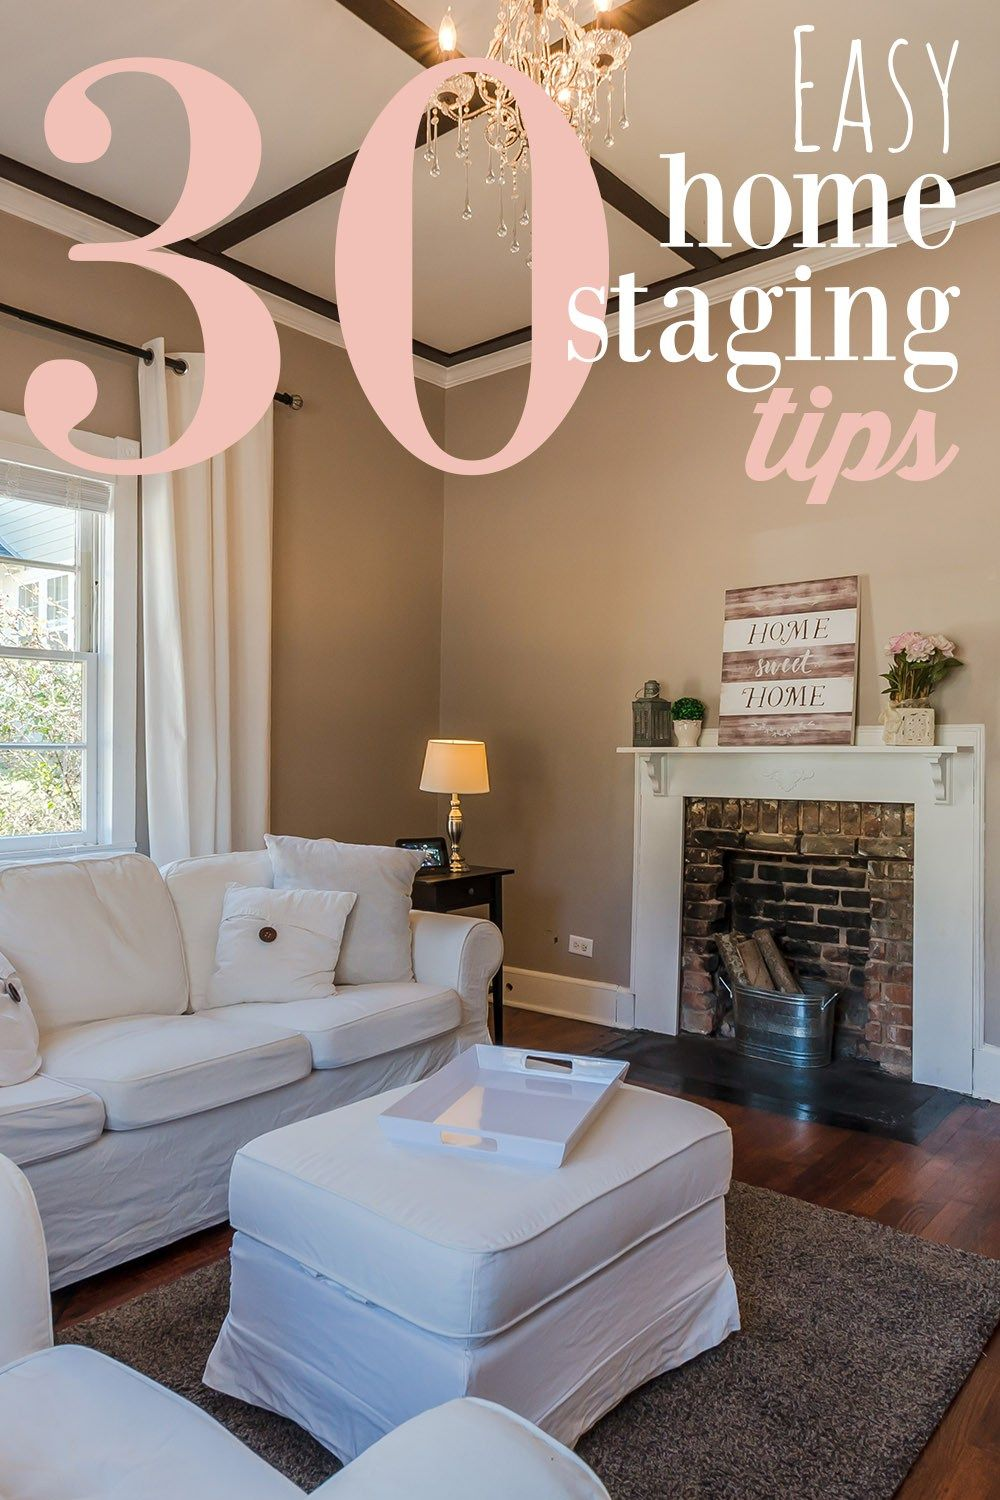 30 Easy Home Staging Tips to Sell Your House Fast | Pinterest | Easy Home Staging Tips on home selling tips, home stager, insurance tips, home color tips, home organizing, nate berkus painting tips, home maintenance tips, home management tips, landscaping tips, staging a home, home packing tips, real estate staging, home staging business, real estate tips, home real estate, home security tips, home decor tips, home black and white, home inspection tips, home audio tips, home remodeling tips, home tips and tricks, home construction tips, vacant home staging, home survival tips,